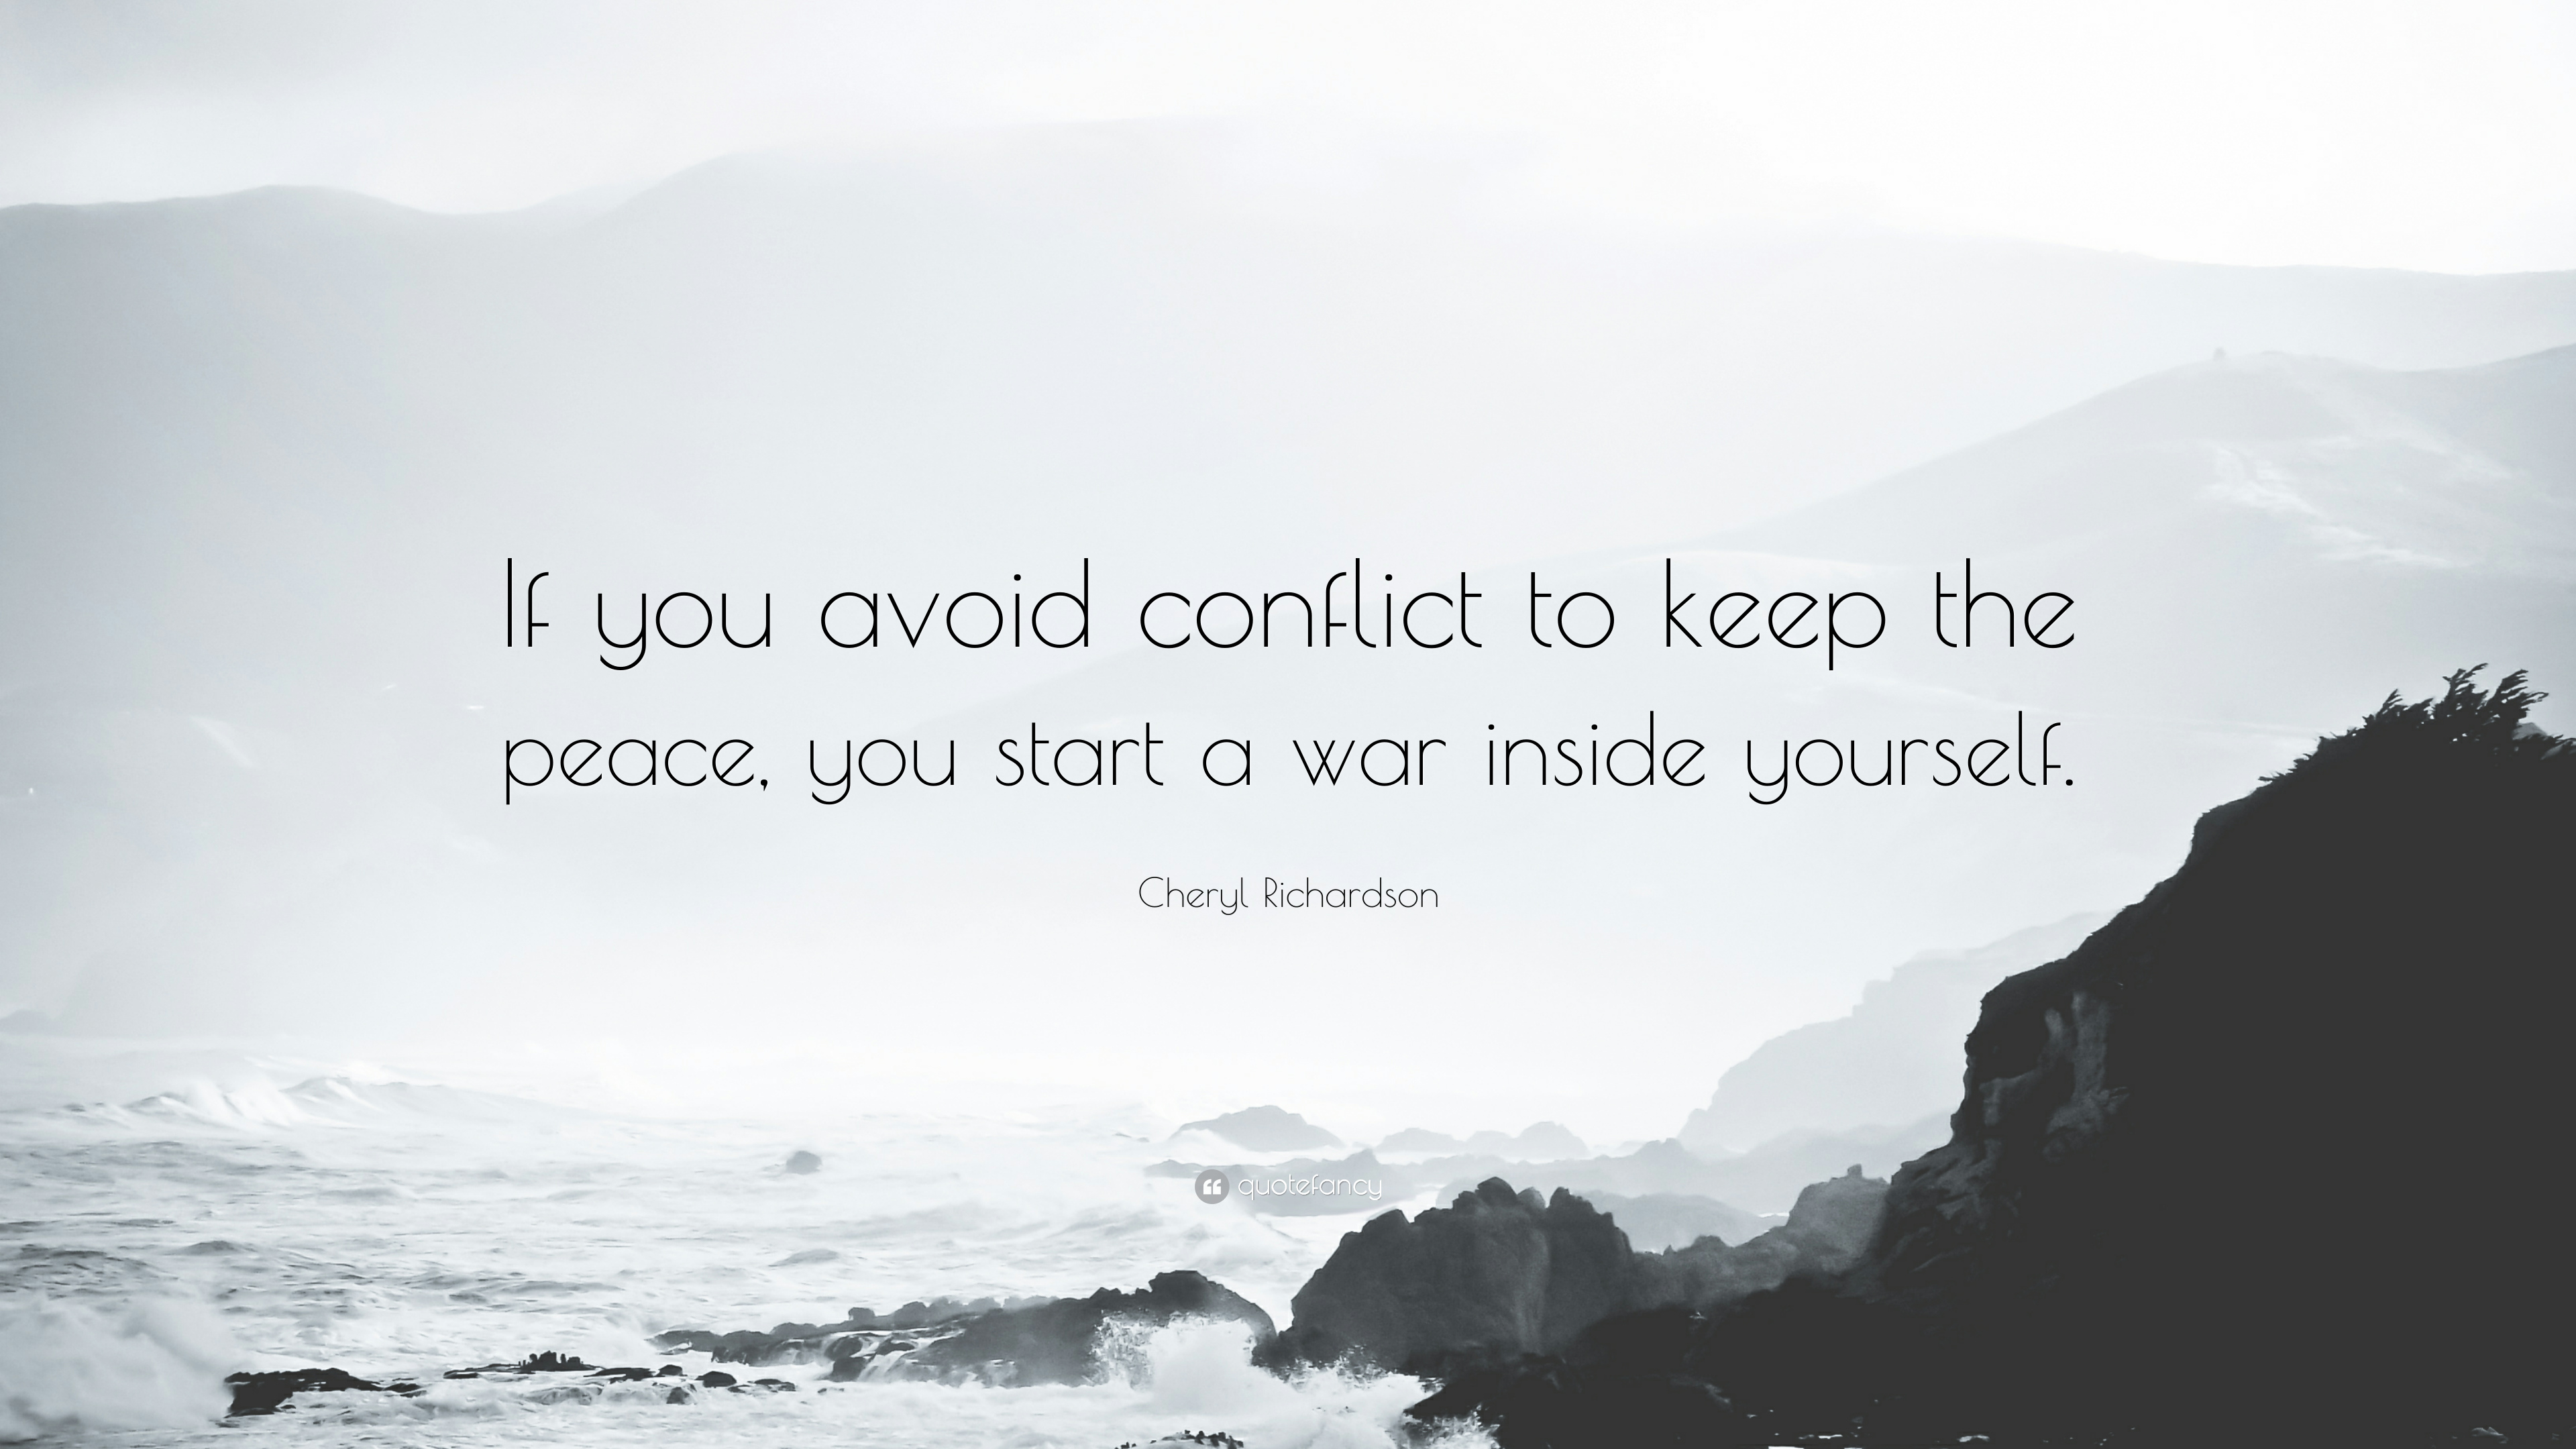 cheryl richardson quote   u201cif you avoid conflict to keep